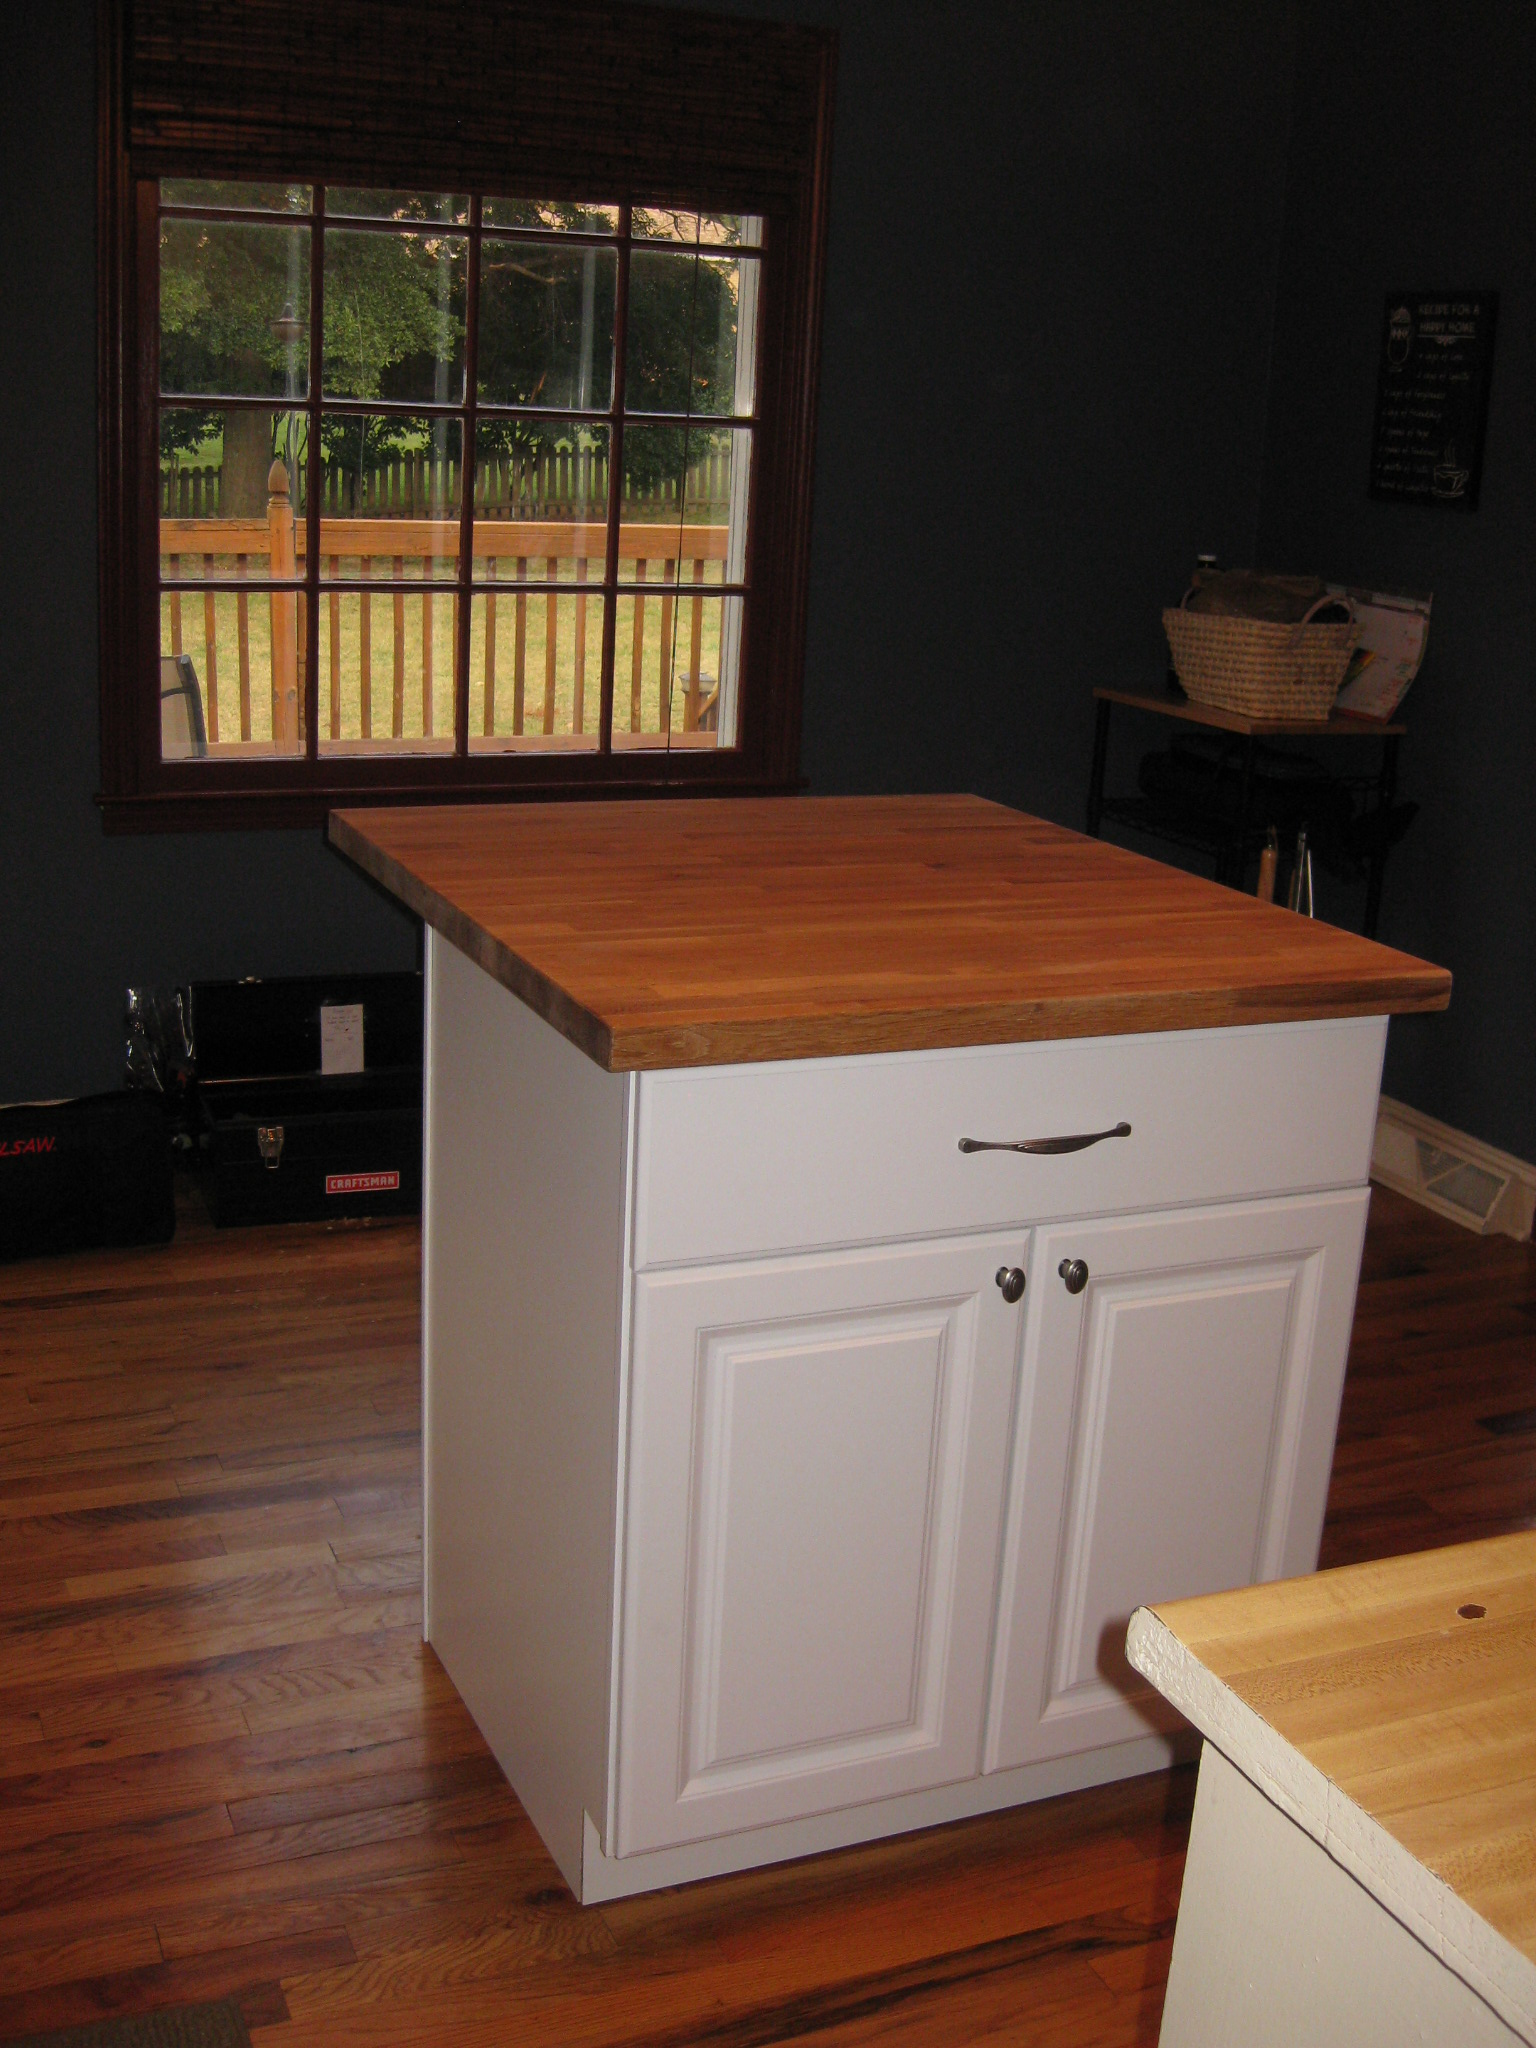 how to build a kitchen island from pre made cabinets building a kitchen cabinet TA DA